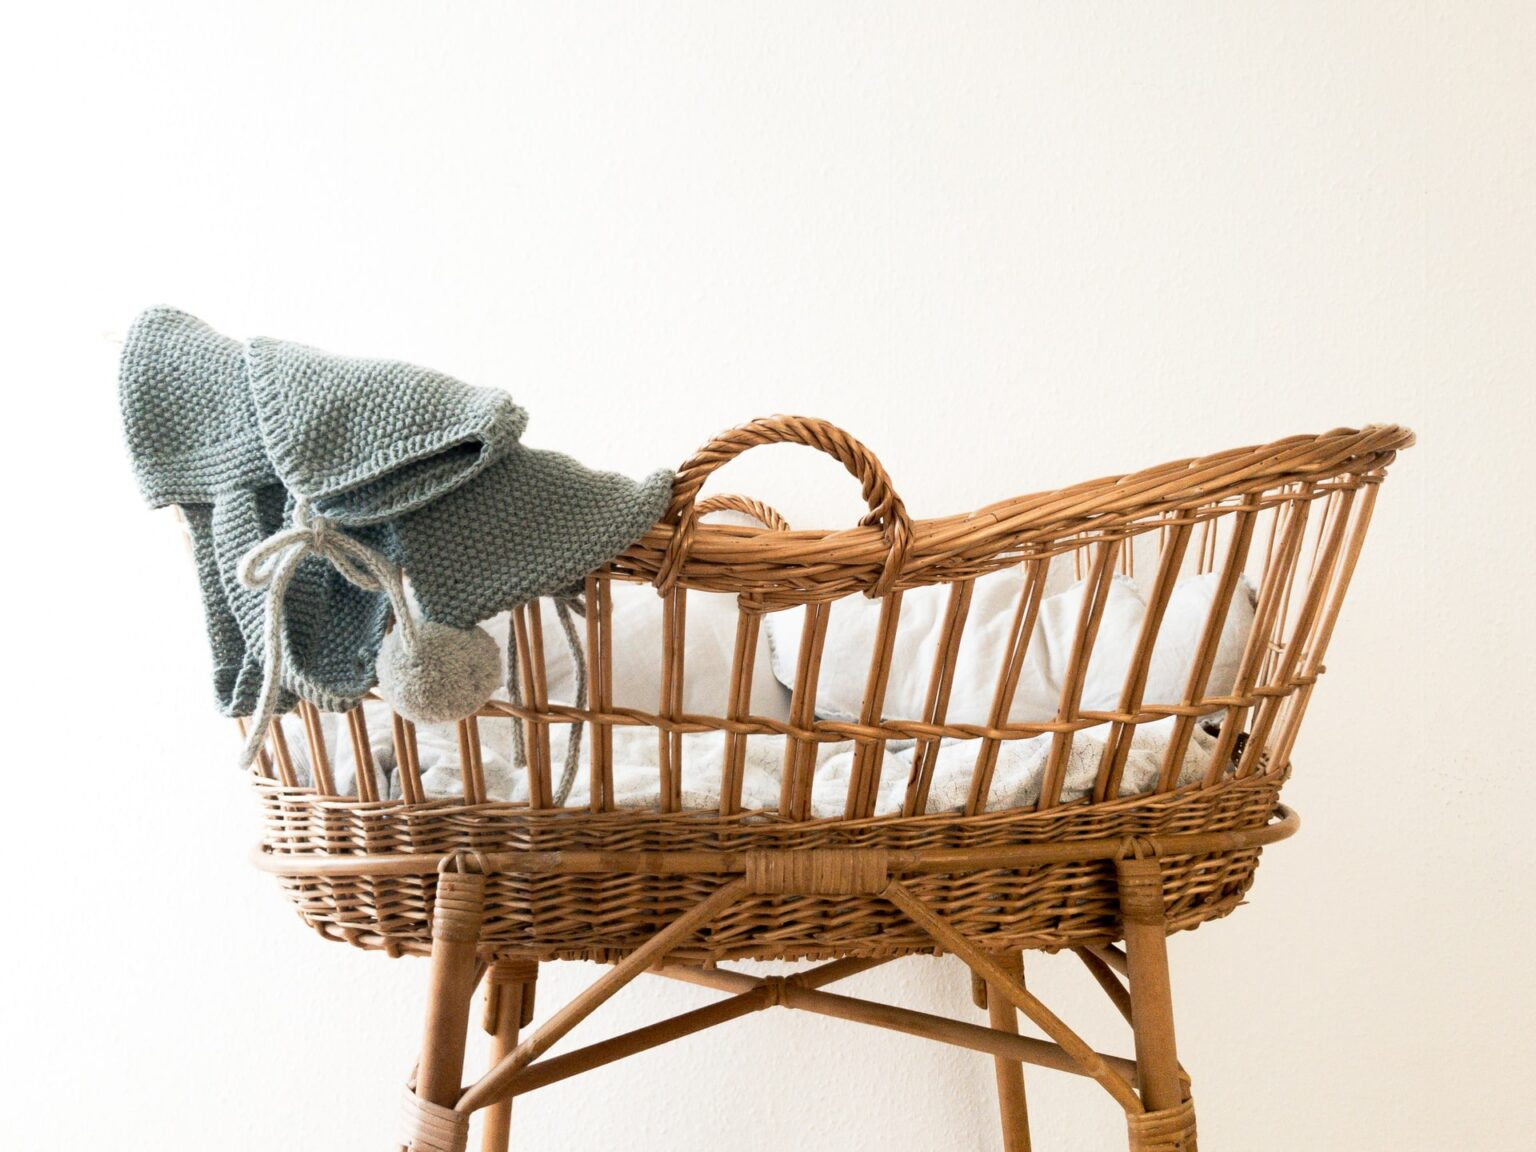 wooden baby crib with a grey blanket illustrating surrogacy article best fertility now